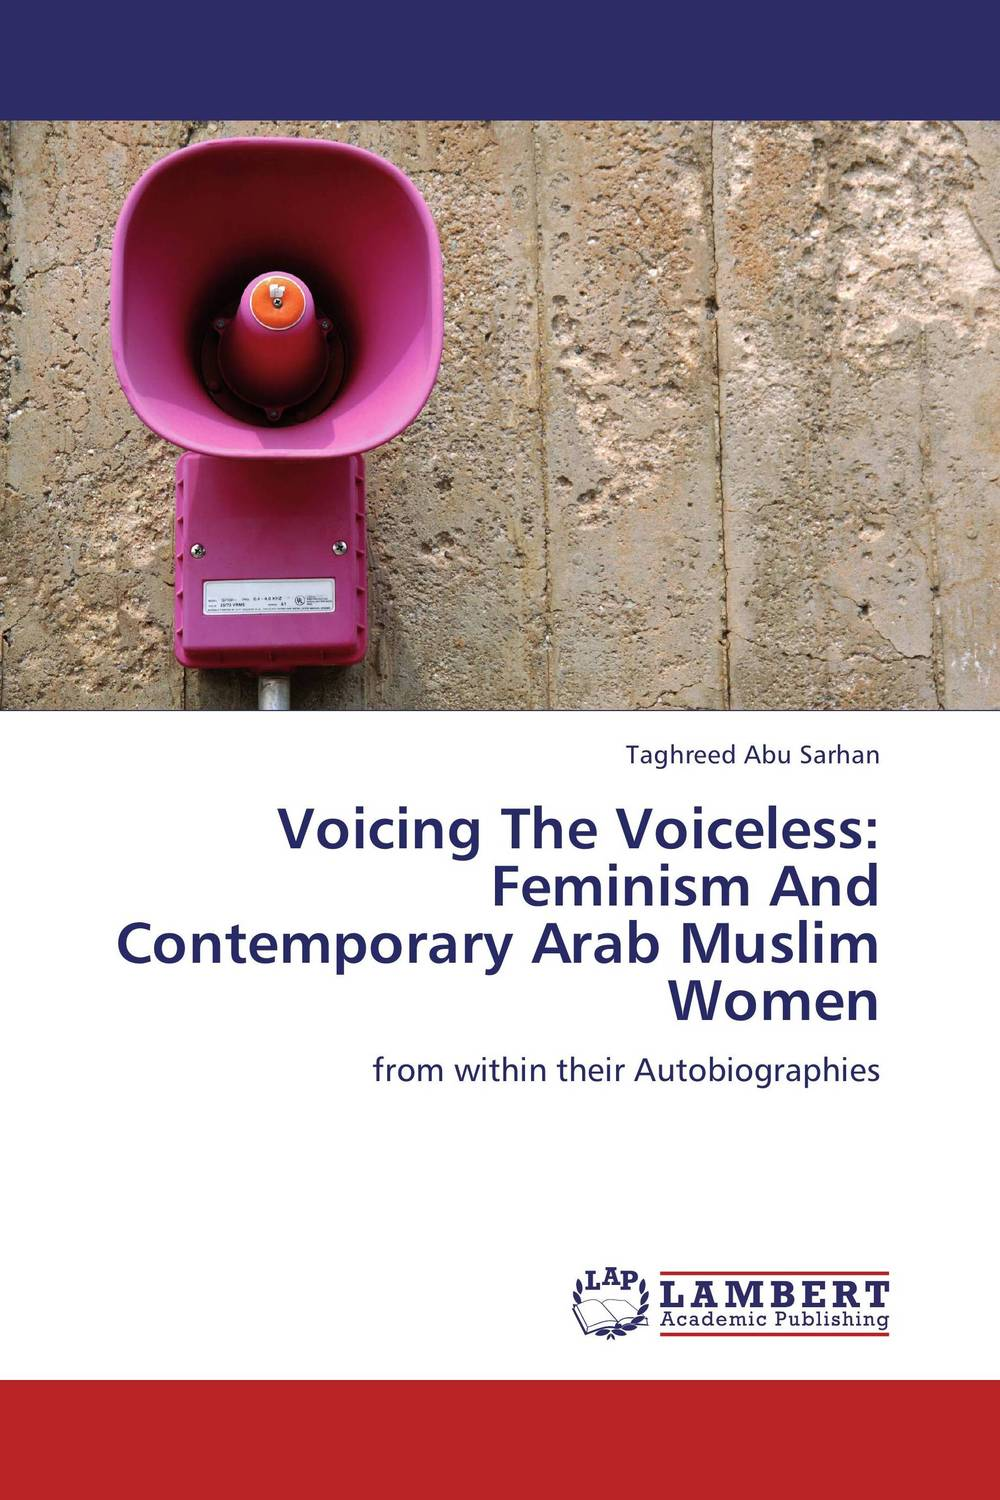 portrayal of muslim women in western media cultural studies essay Women, art, and art history: gender and feminist in which troubadour culture allowed women agency in relation of the importance of studies of women's.